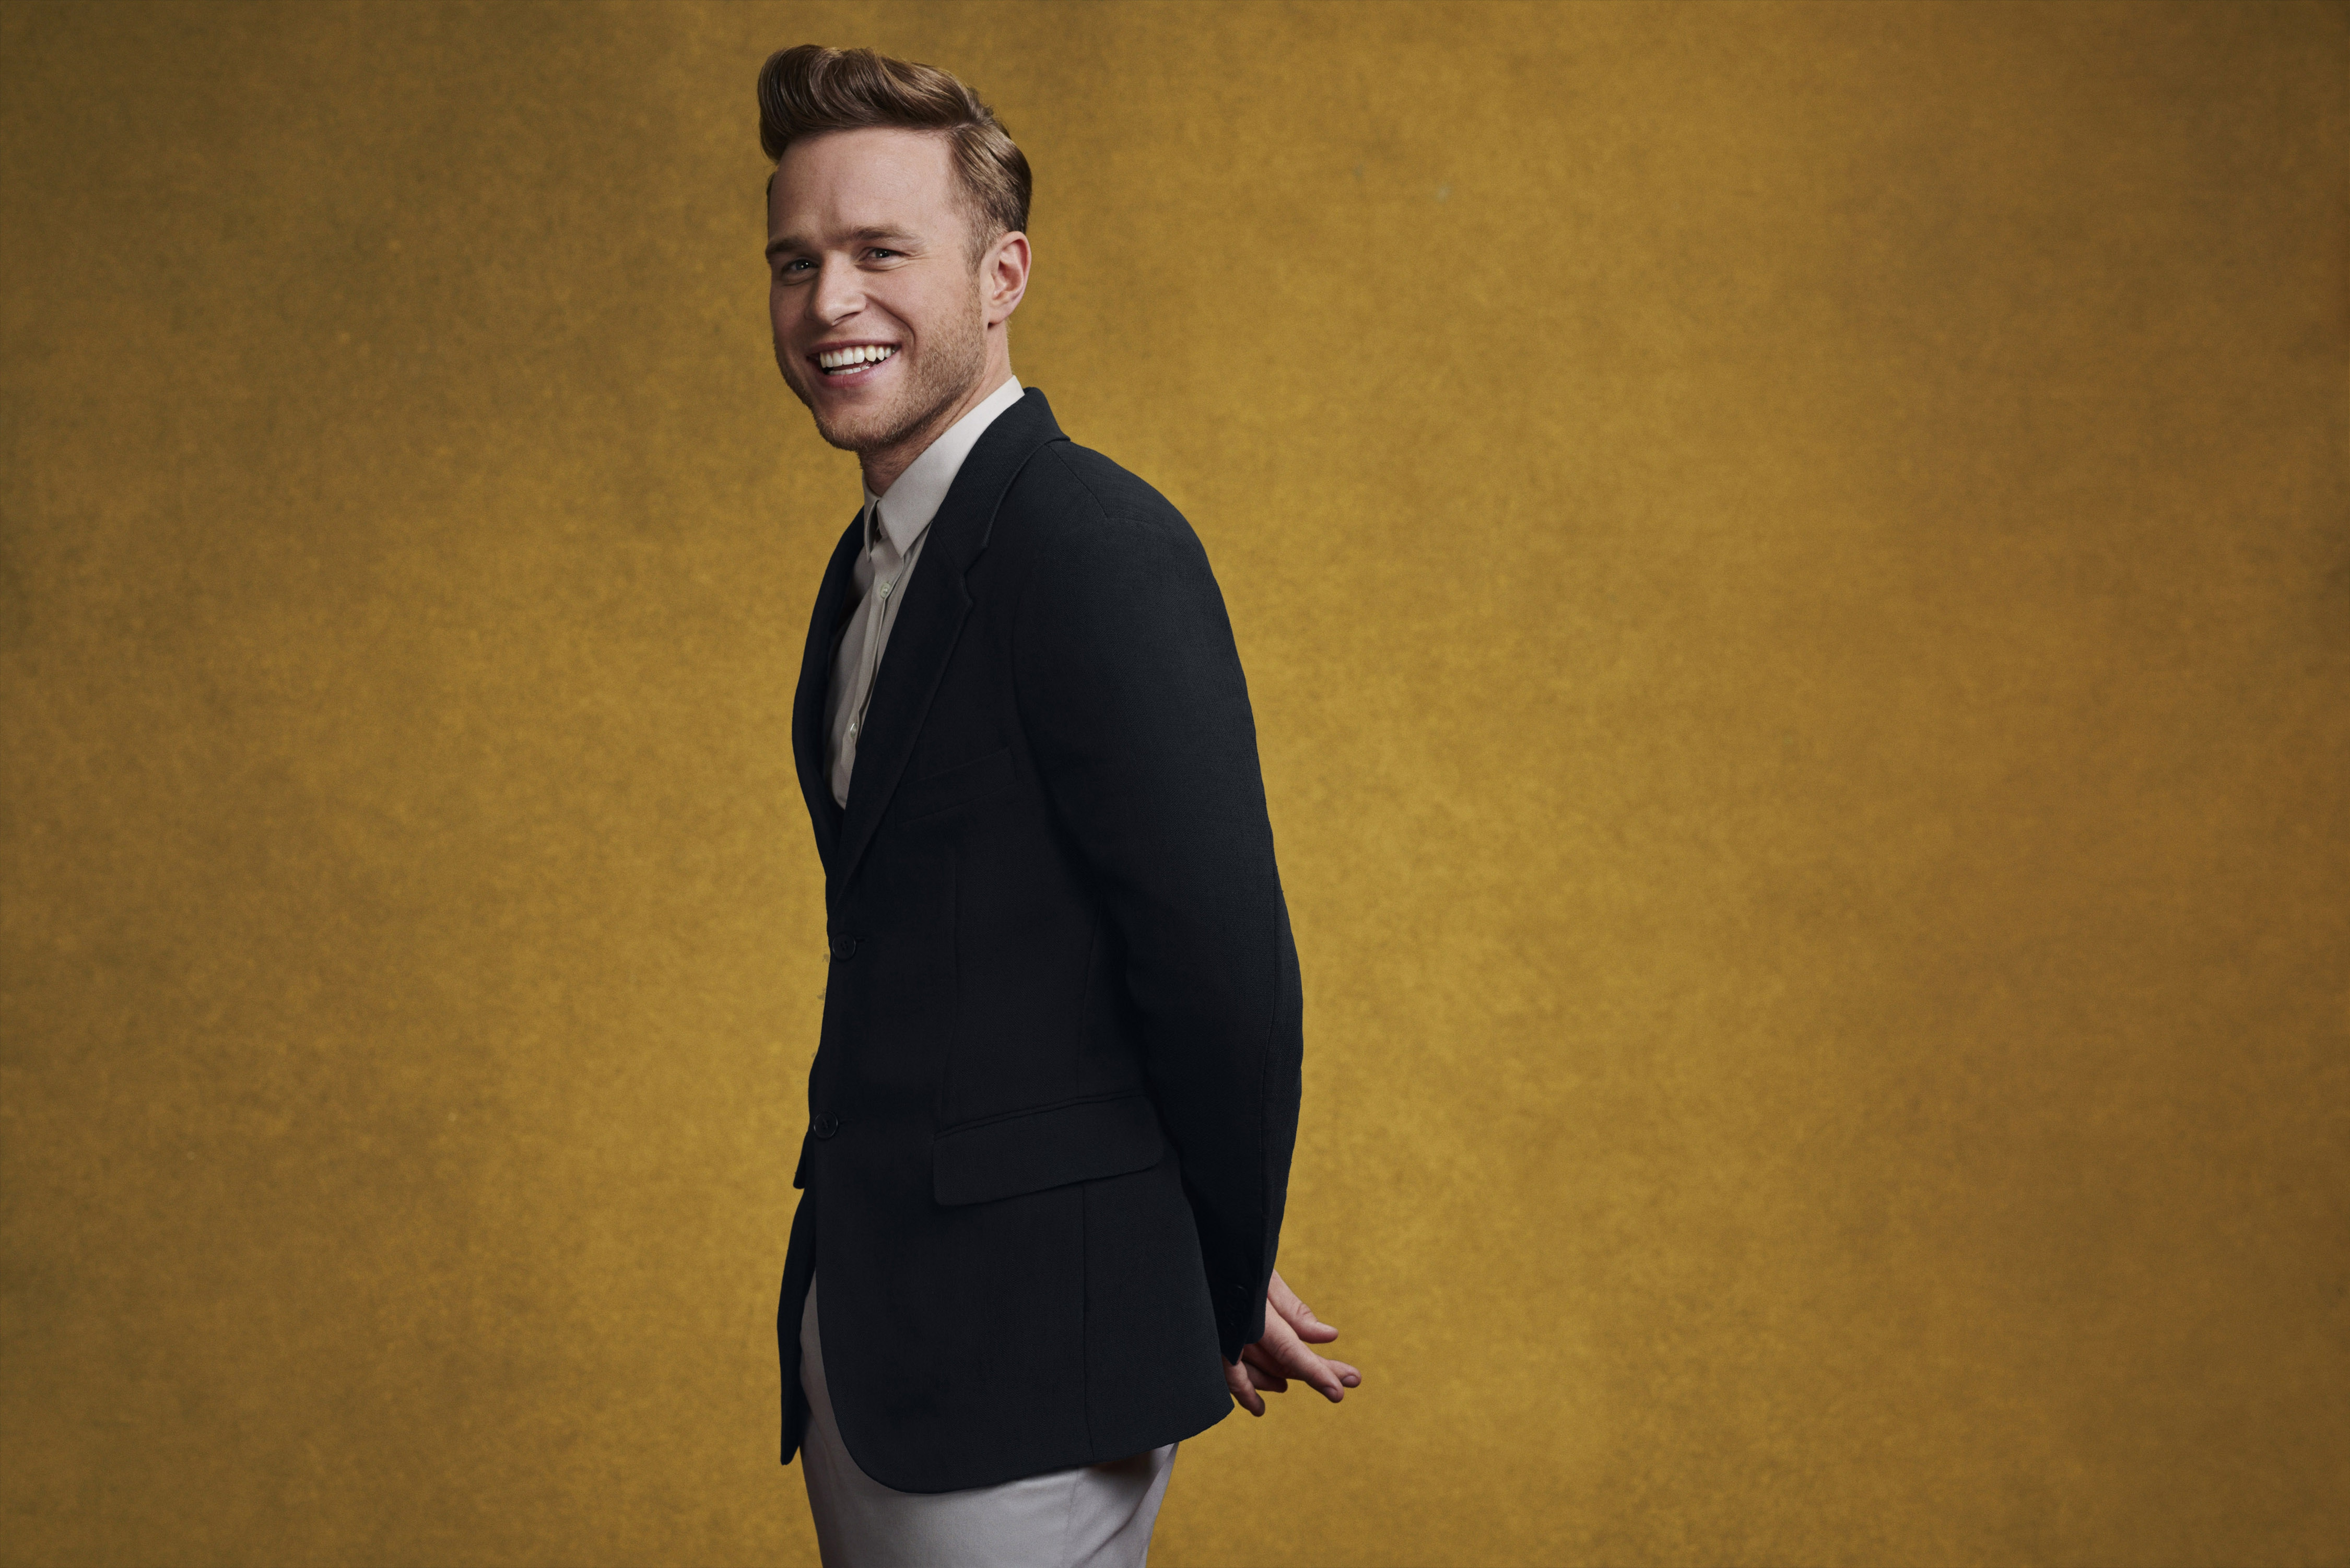 Olly Murs Wallpaper For Computer